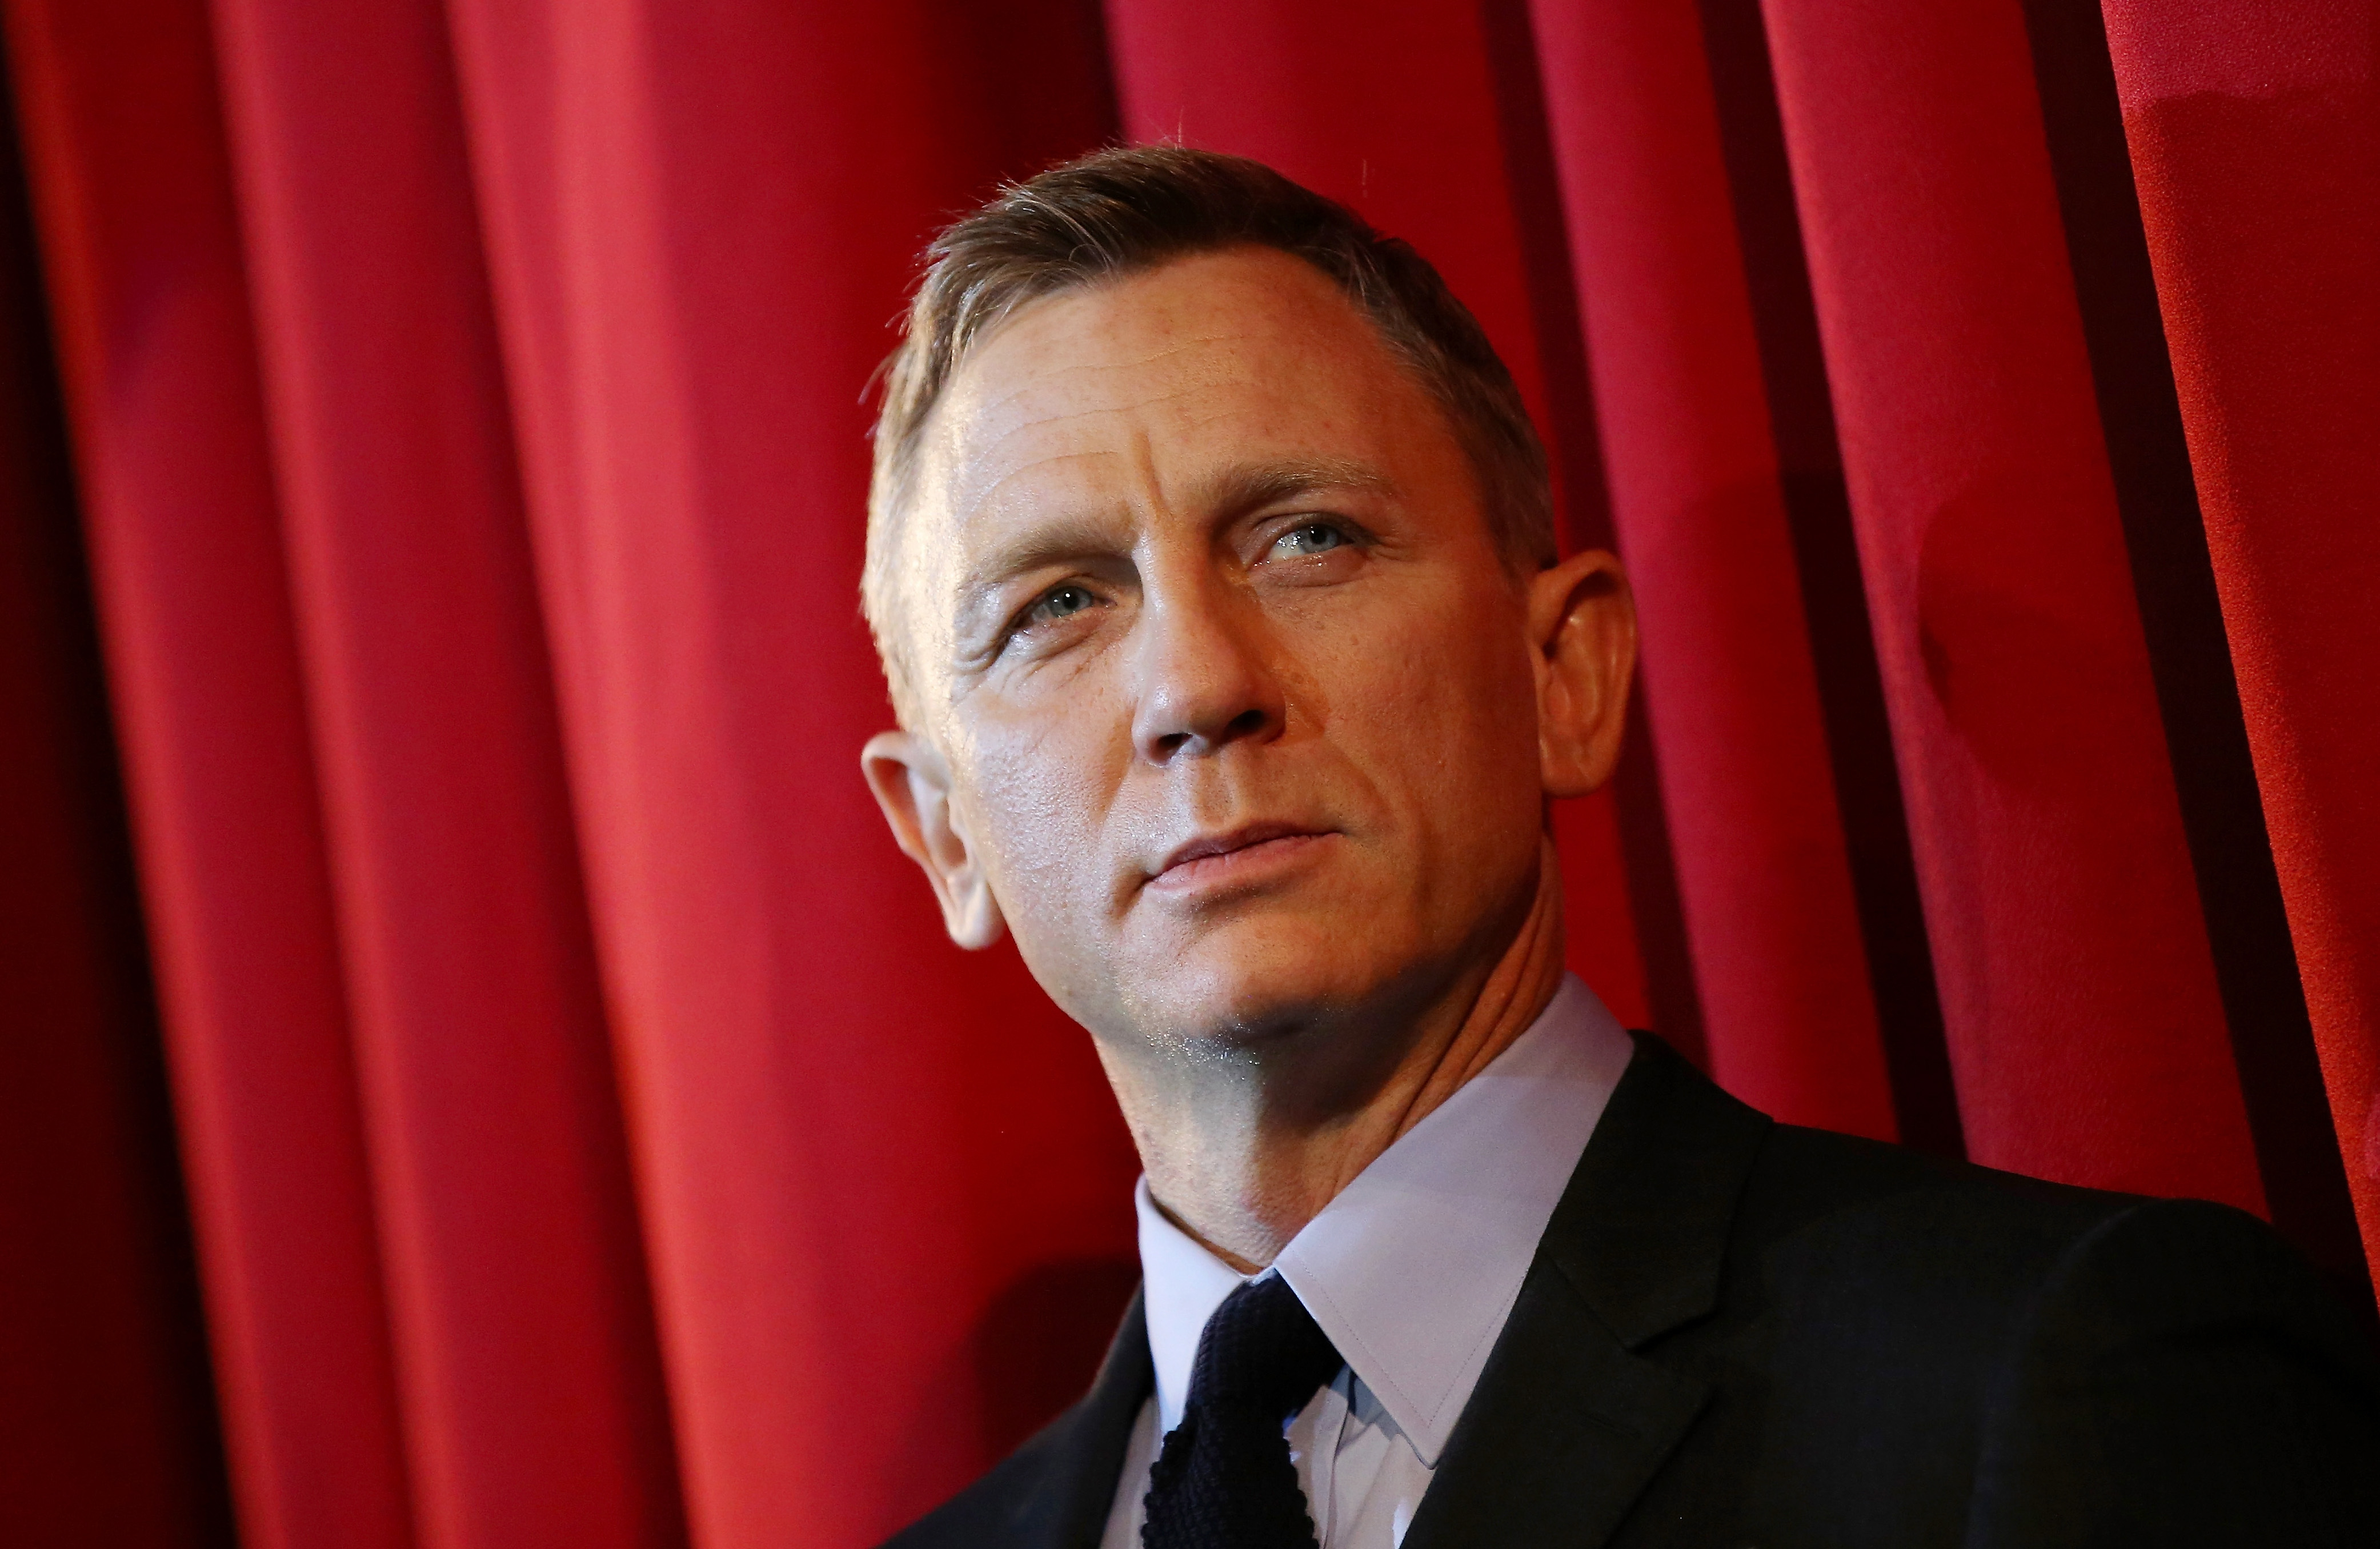 Daniel Craig 'avoids alcohol and unhealthy food' to get into shape for next Bond movie